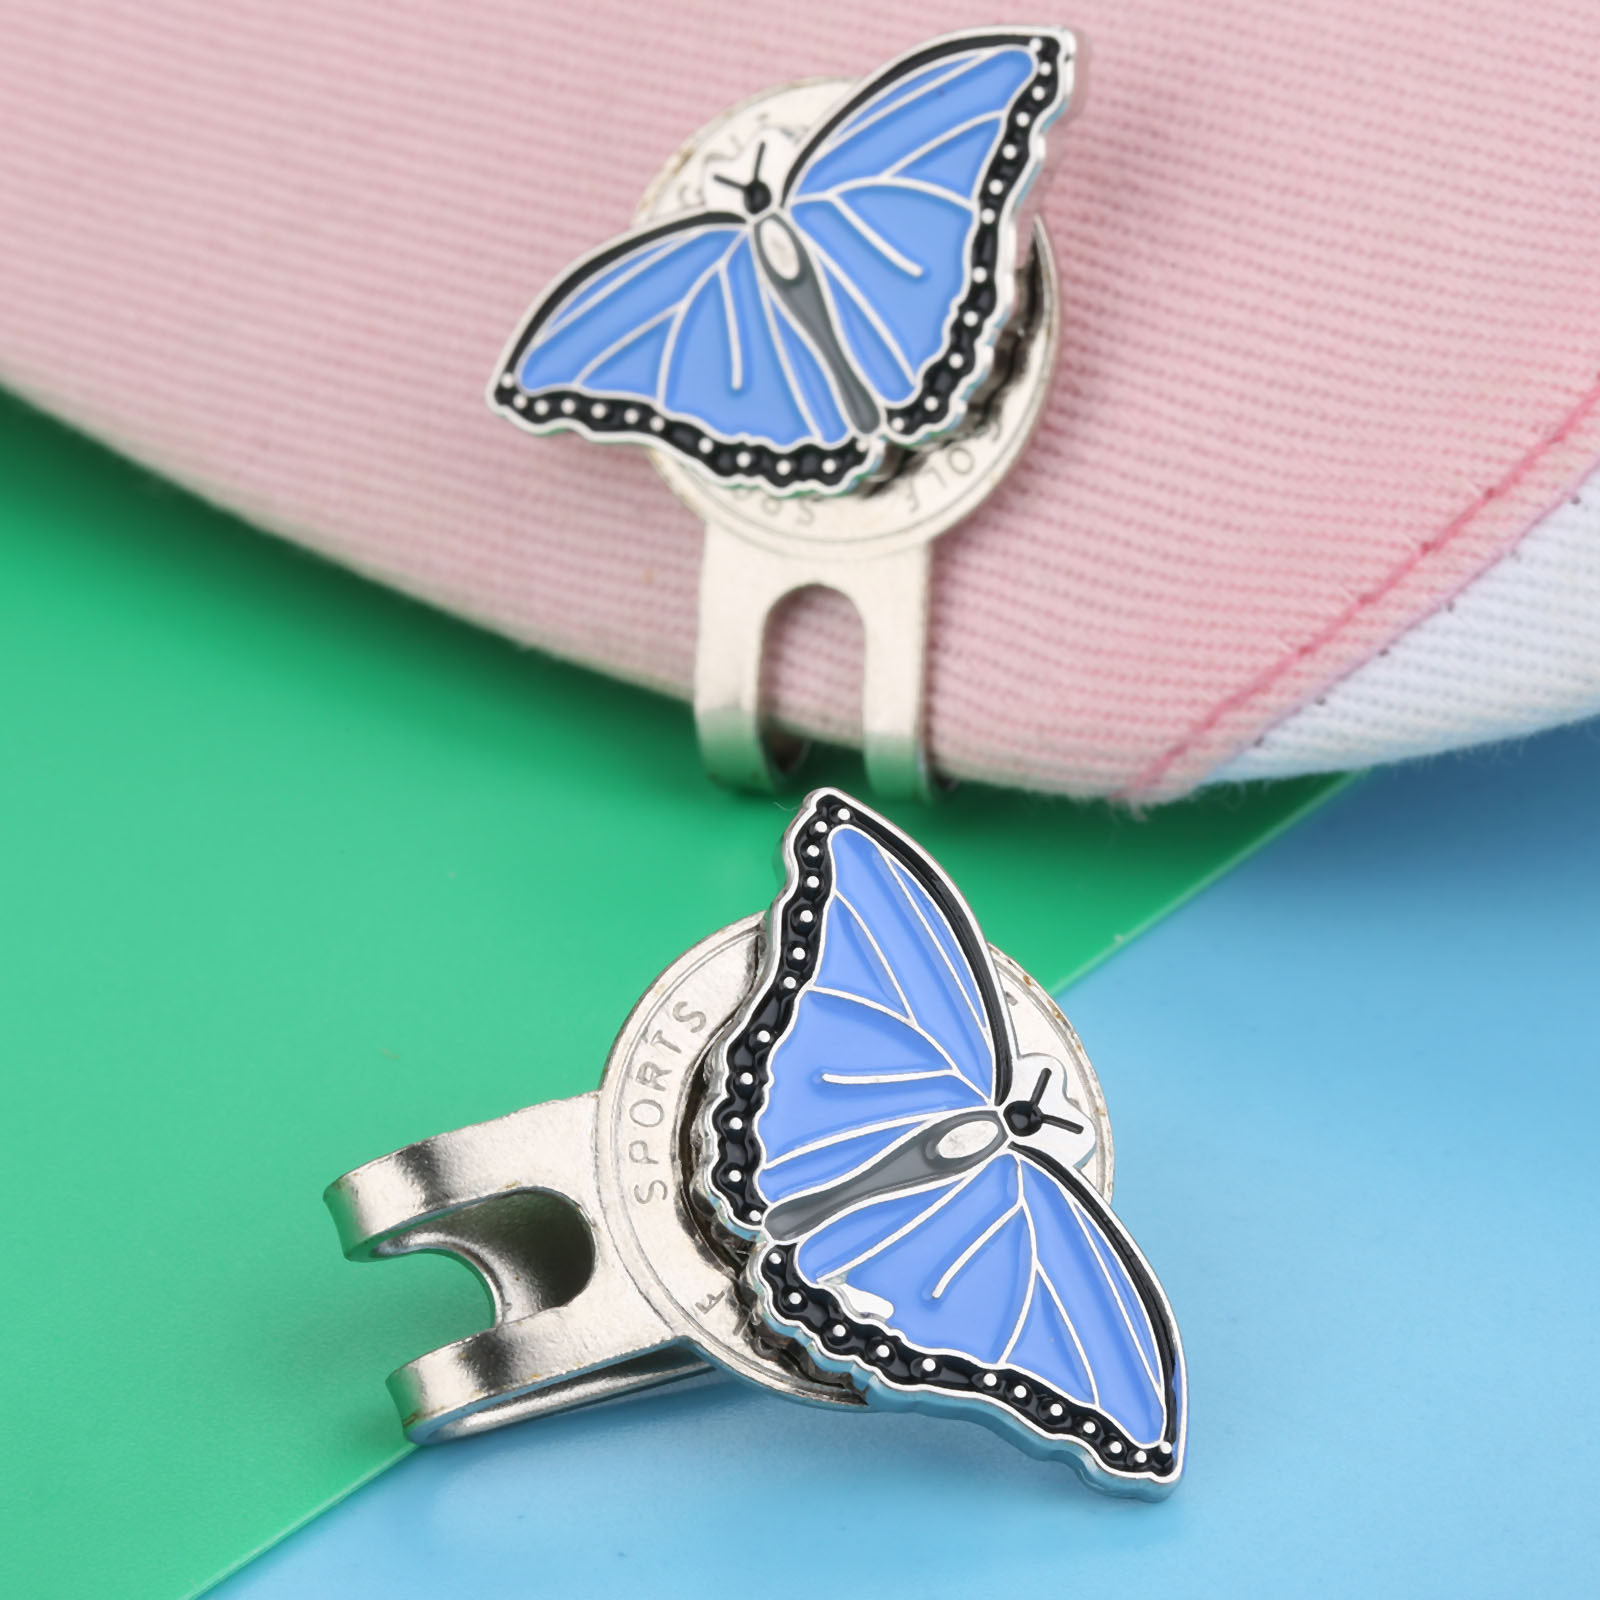 Professional Alloy Golf Cap Clip Metal Magnetic Hat Visor Clips Golf Ball Aiming Marker Golf Training Aids - Butterfly Design